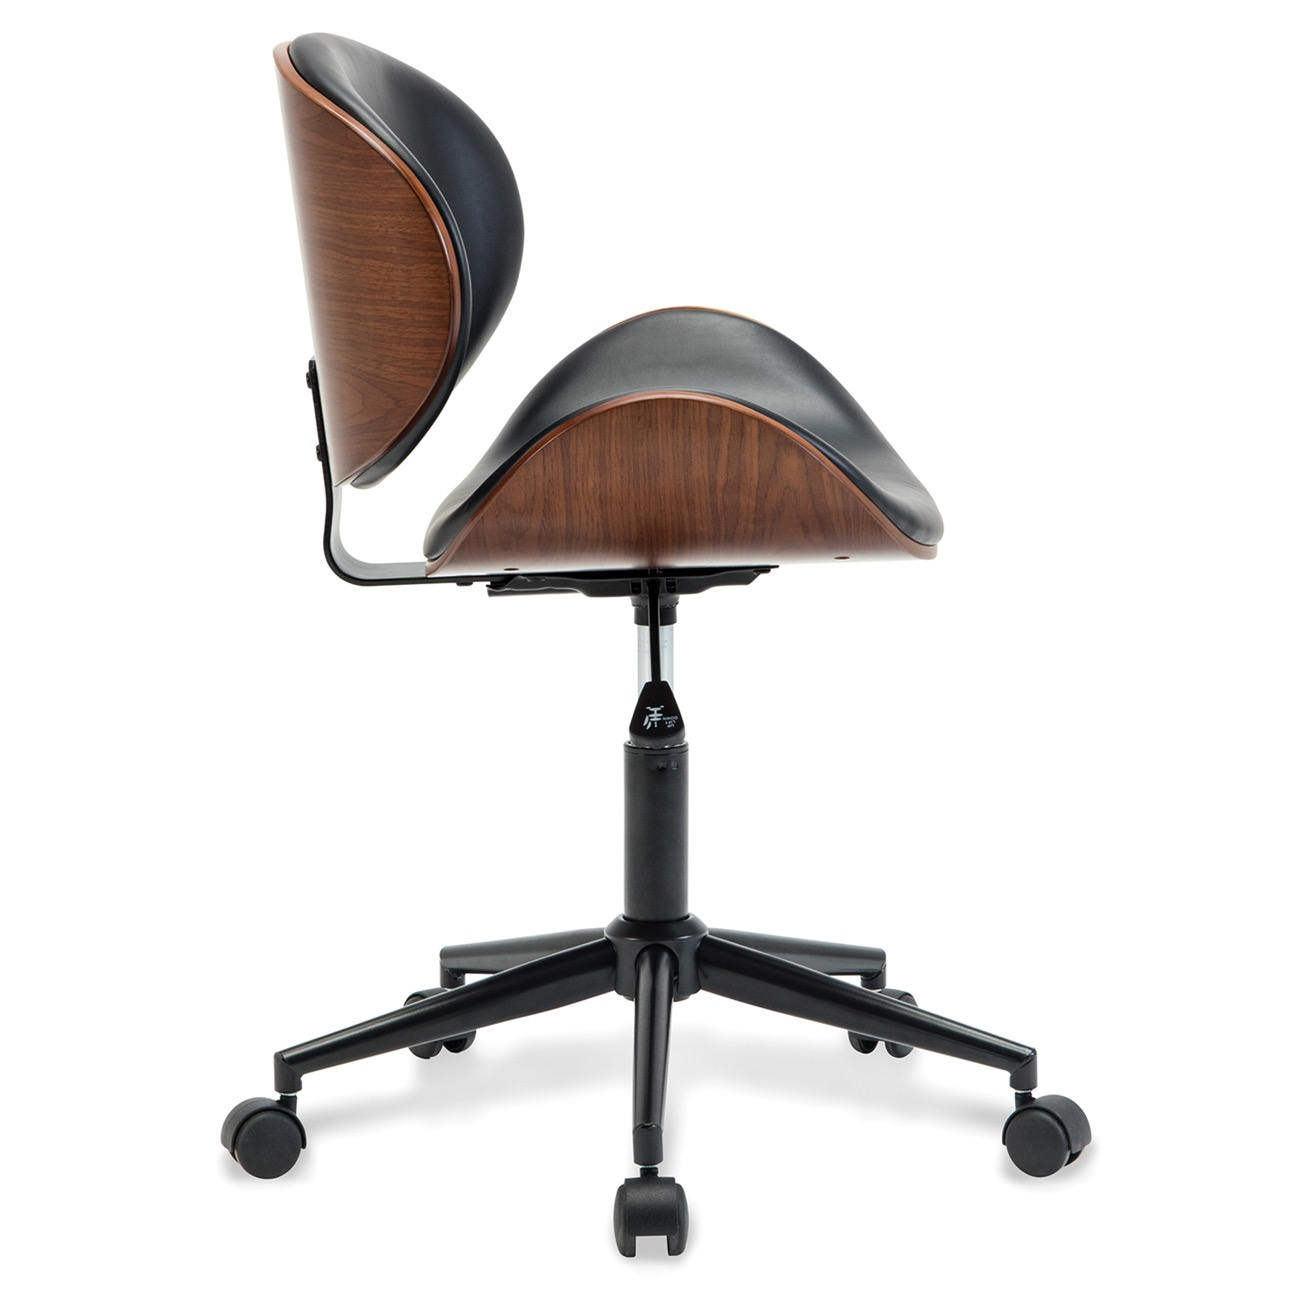 Details About Mid Century Upholstered Metal Base Adjustable Office Desk Swivel Chair